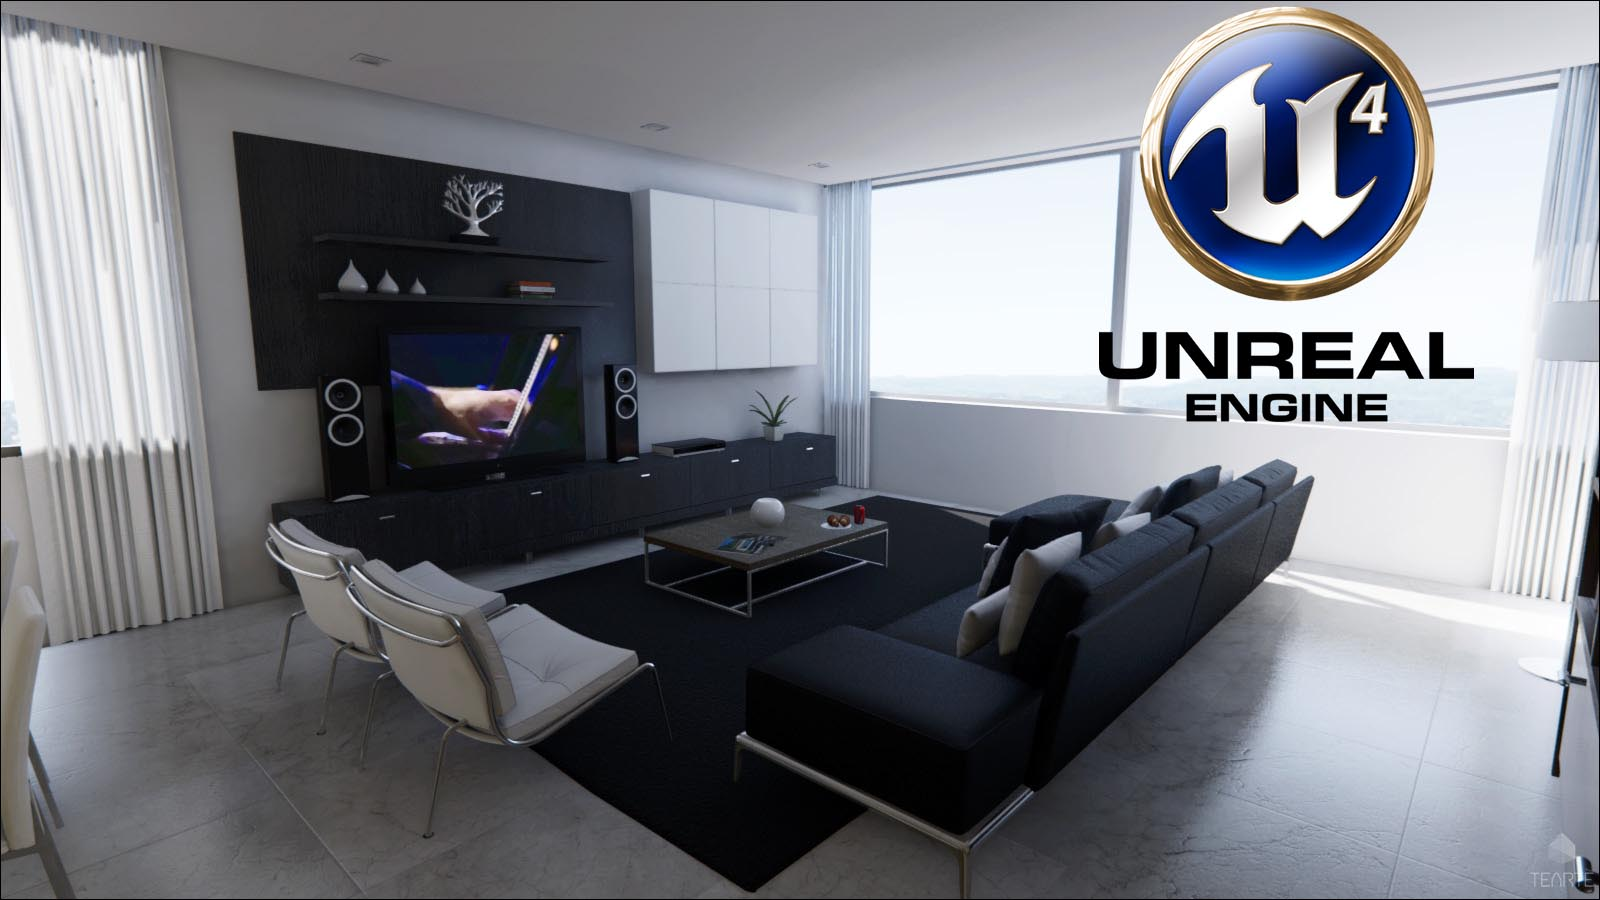 Unreal Engine 4 & Architecture : Un duo Gagnant